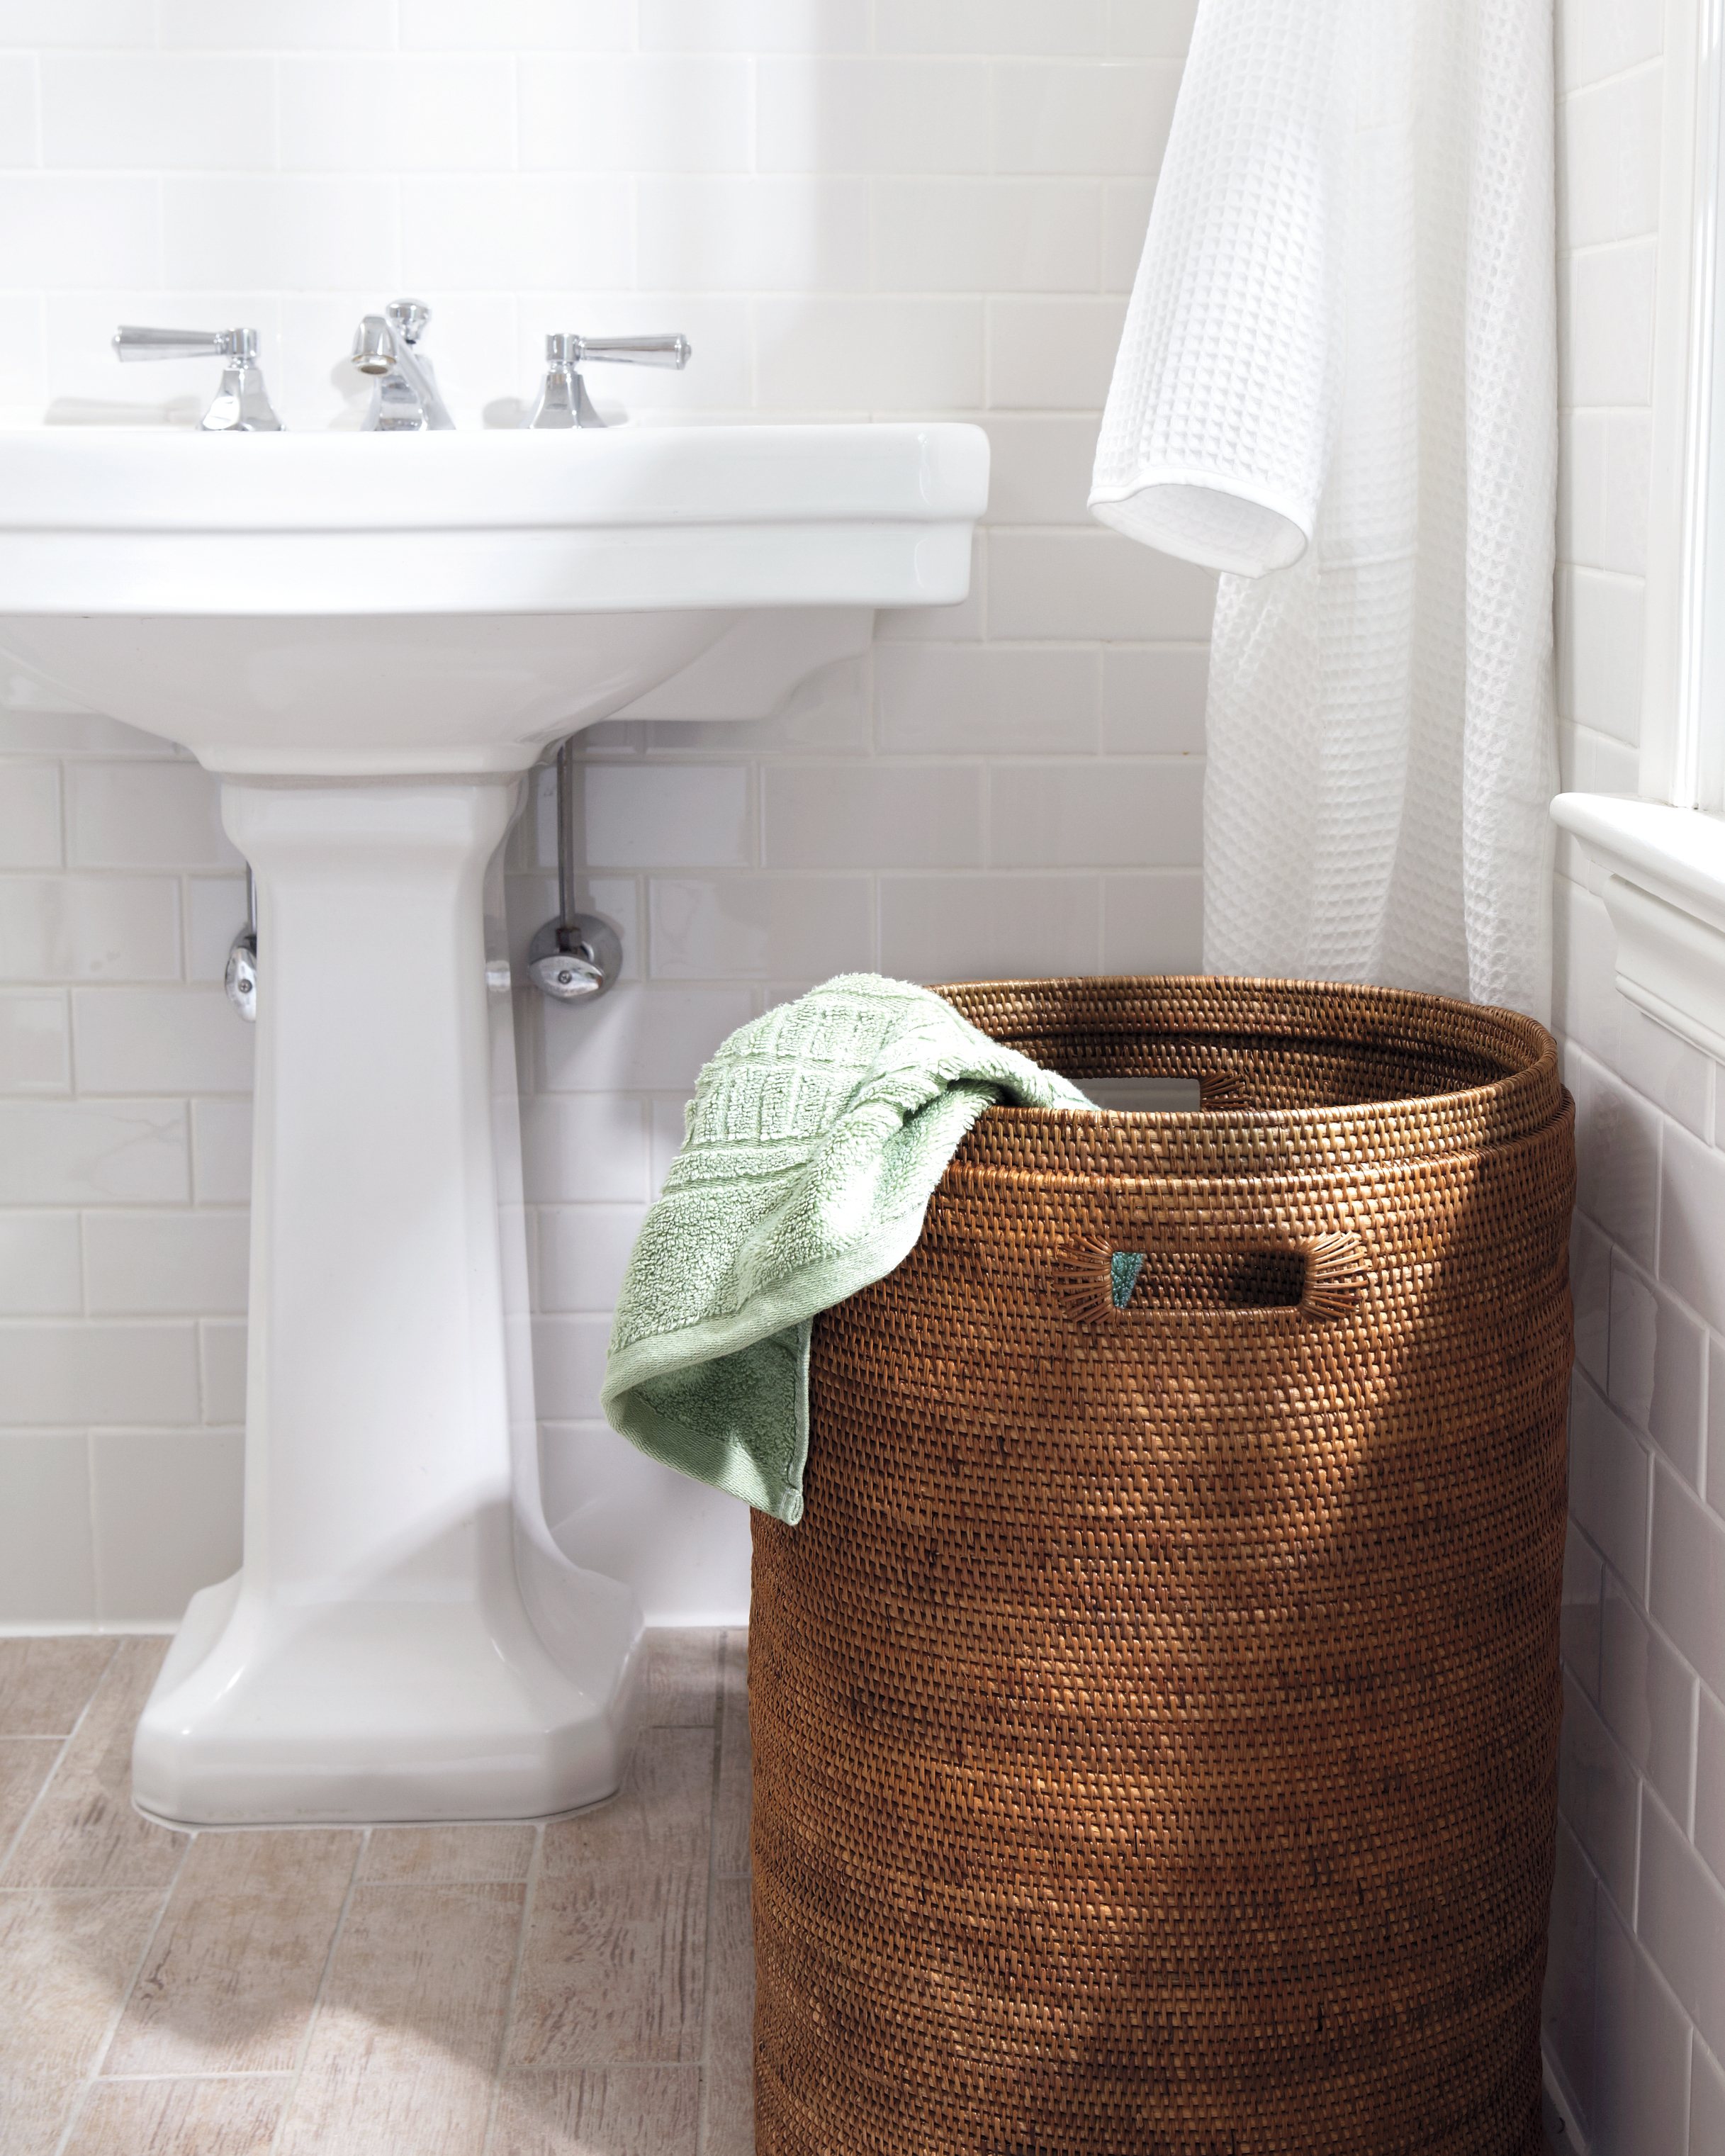 bathroom-storage-hamper-6229-d111382.jpg